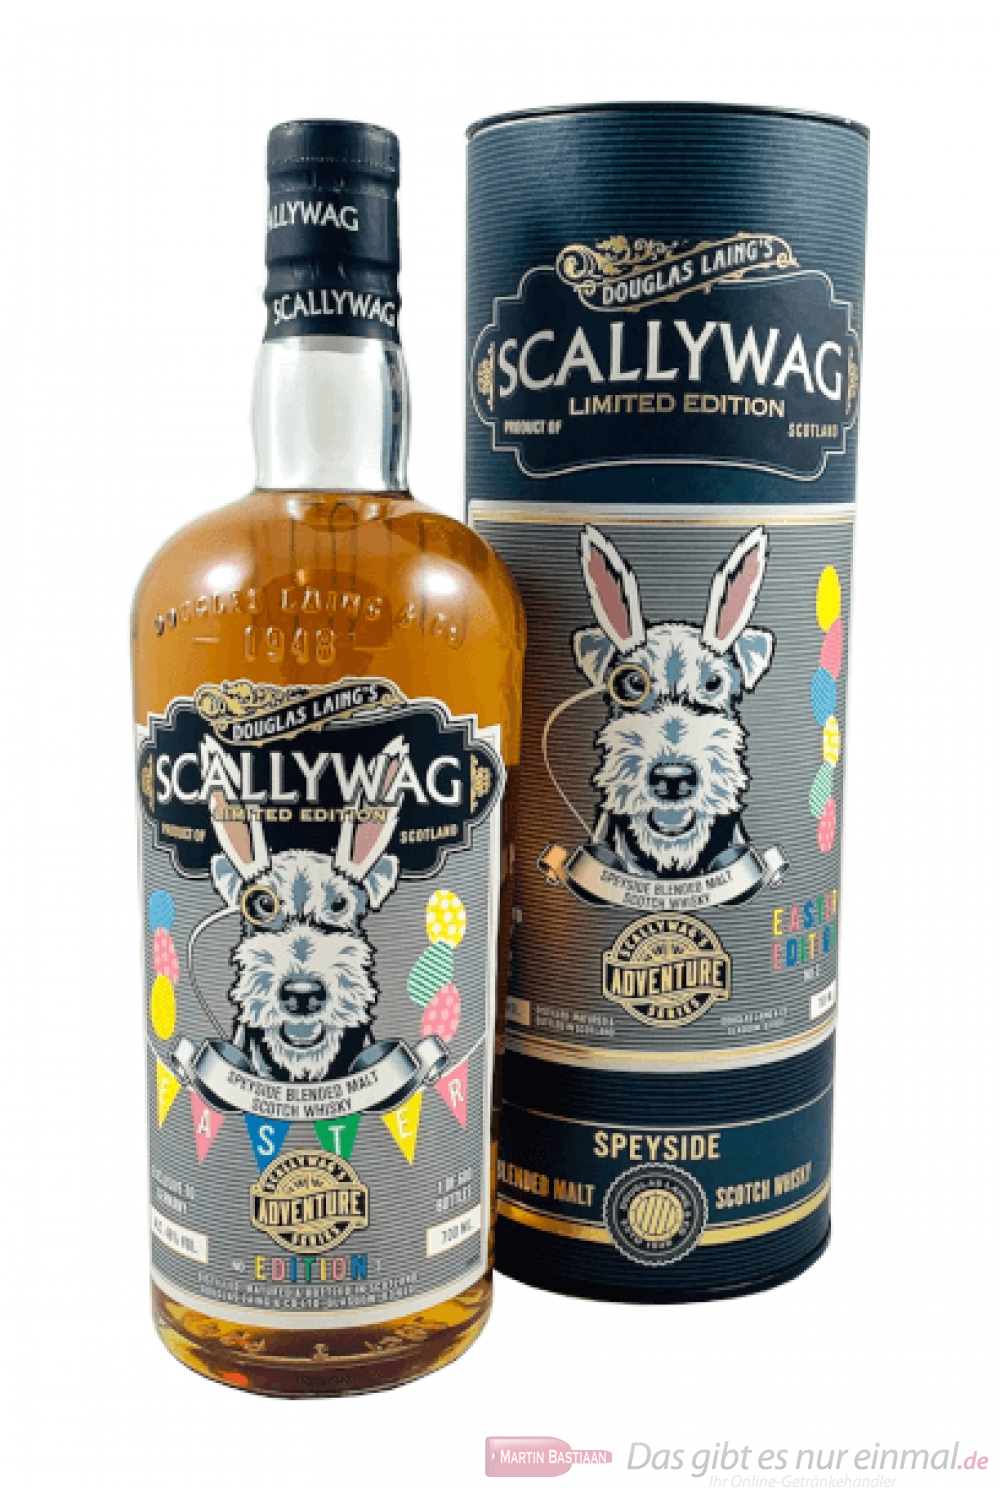 Scallywag Easter Edition 2019 Blended Malt Scotch Whisky 0,7l